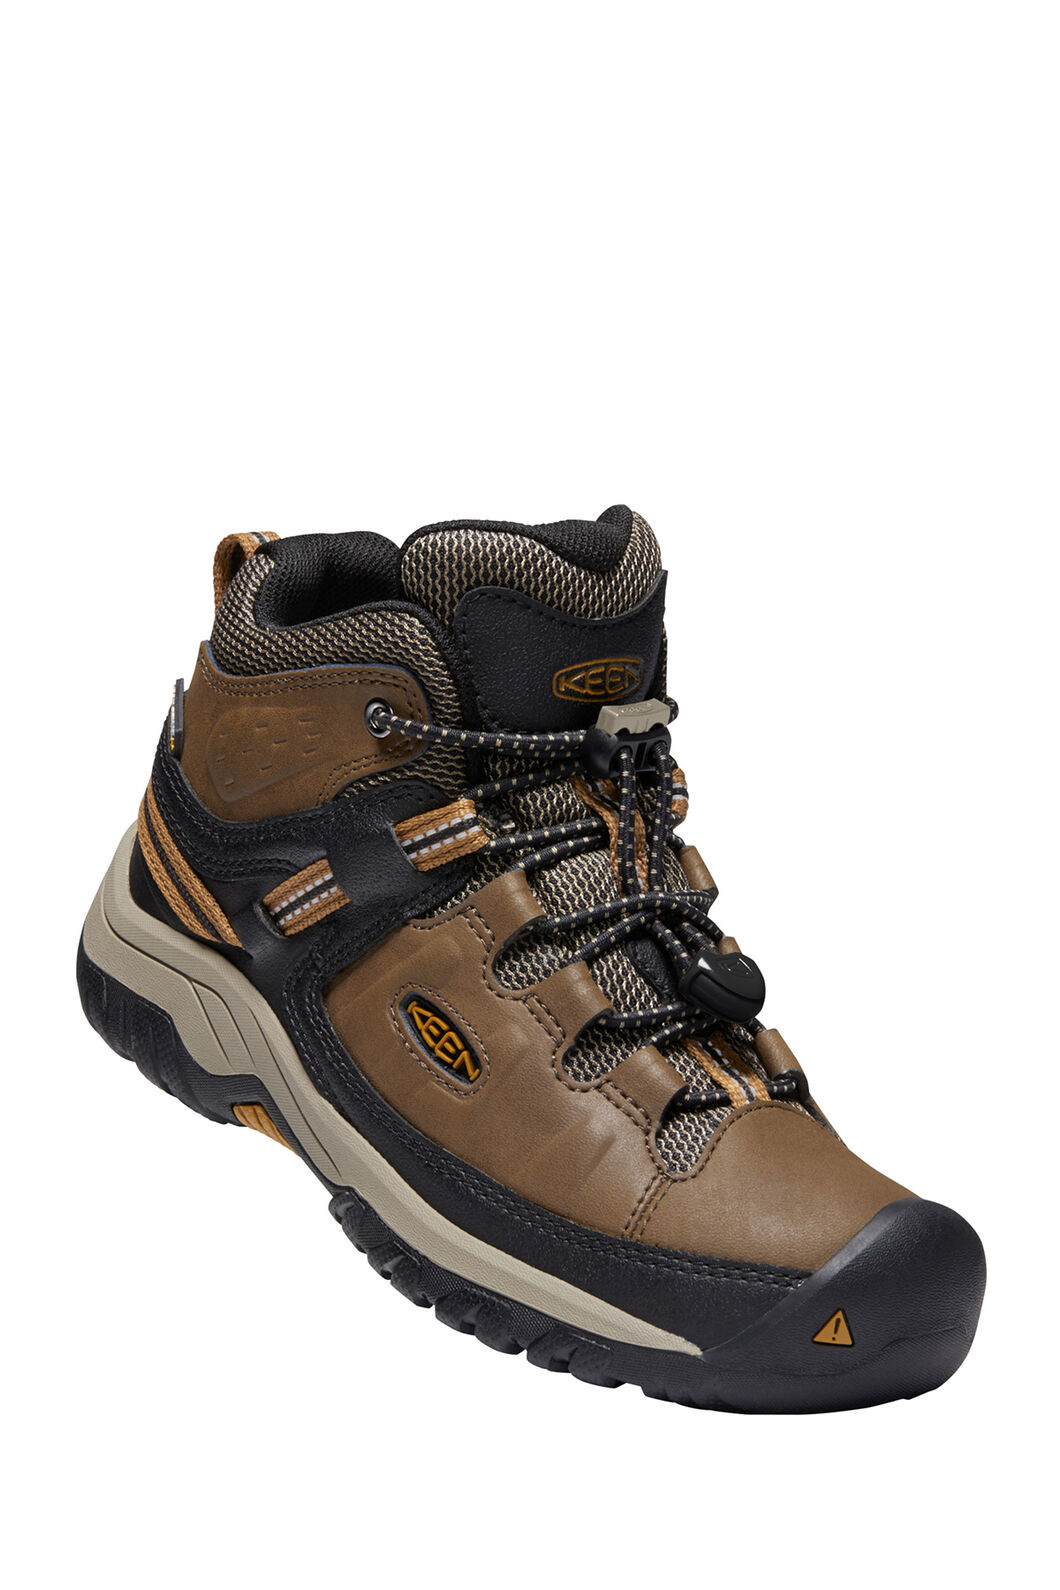 KEEN Targhee WP Hiking Boots — Youth, Dark Earth/Golden Brown, hi-res